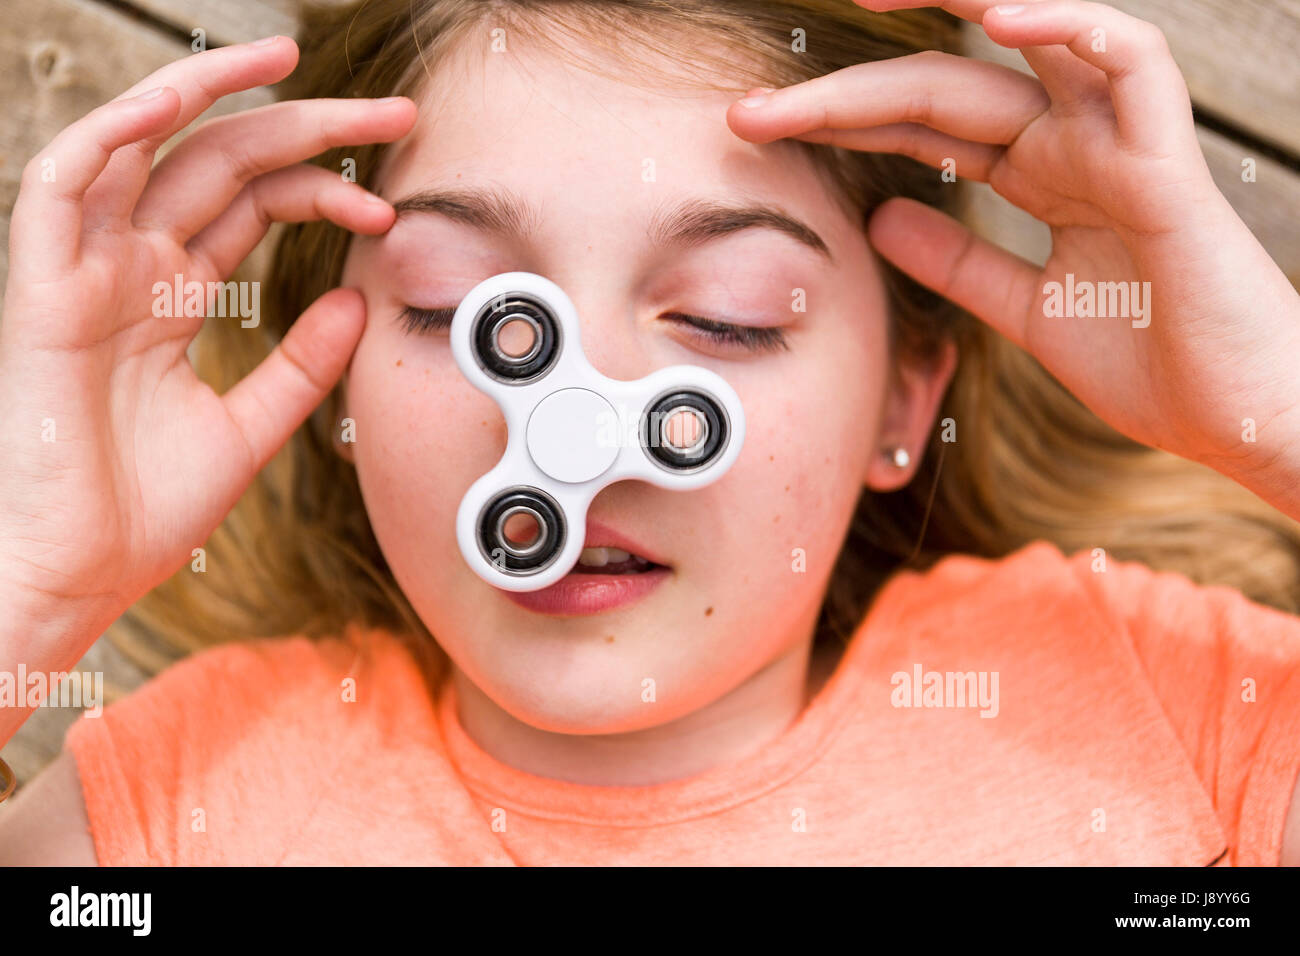 Female teenager playing with fidget spinner spinning toy on her nose  Model Release: Yes.  Property release: No. - Stock Image